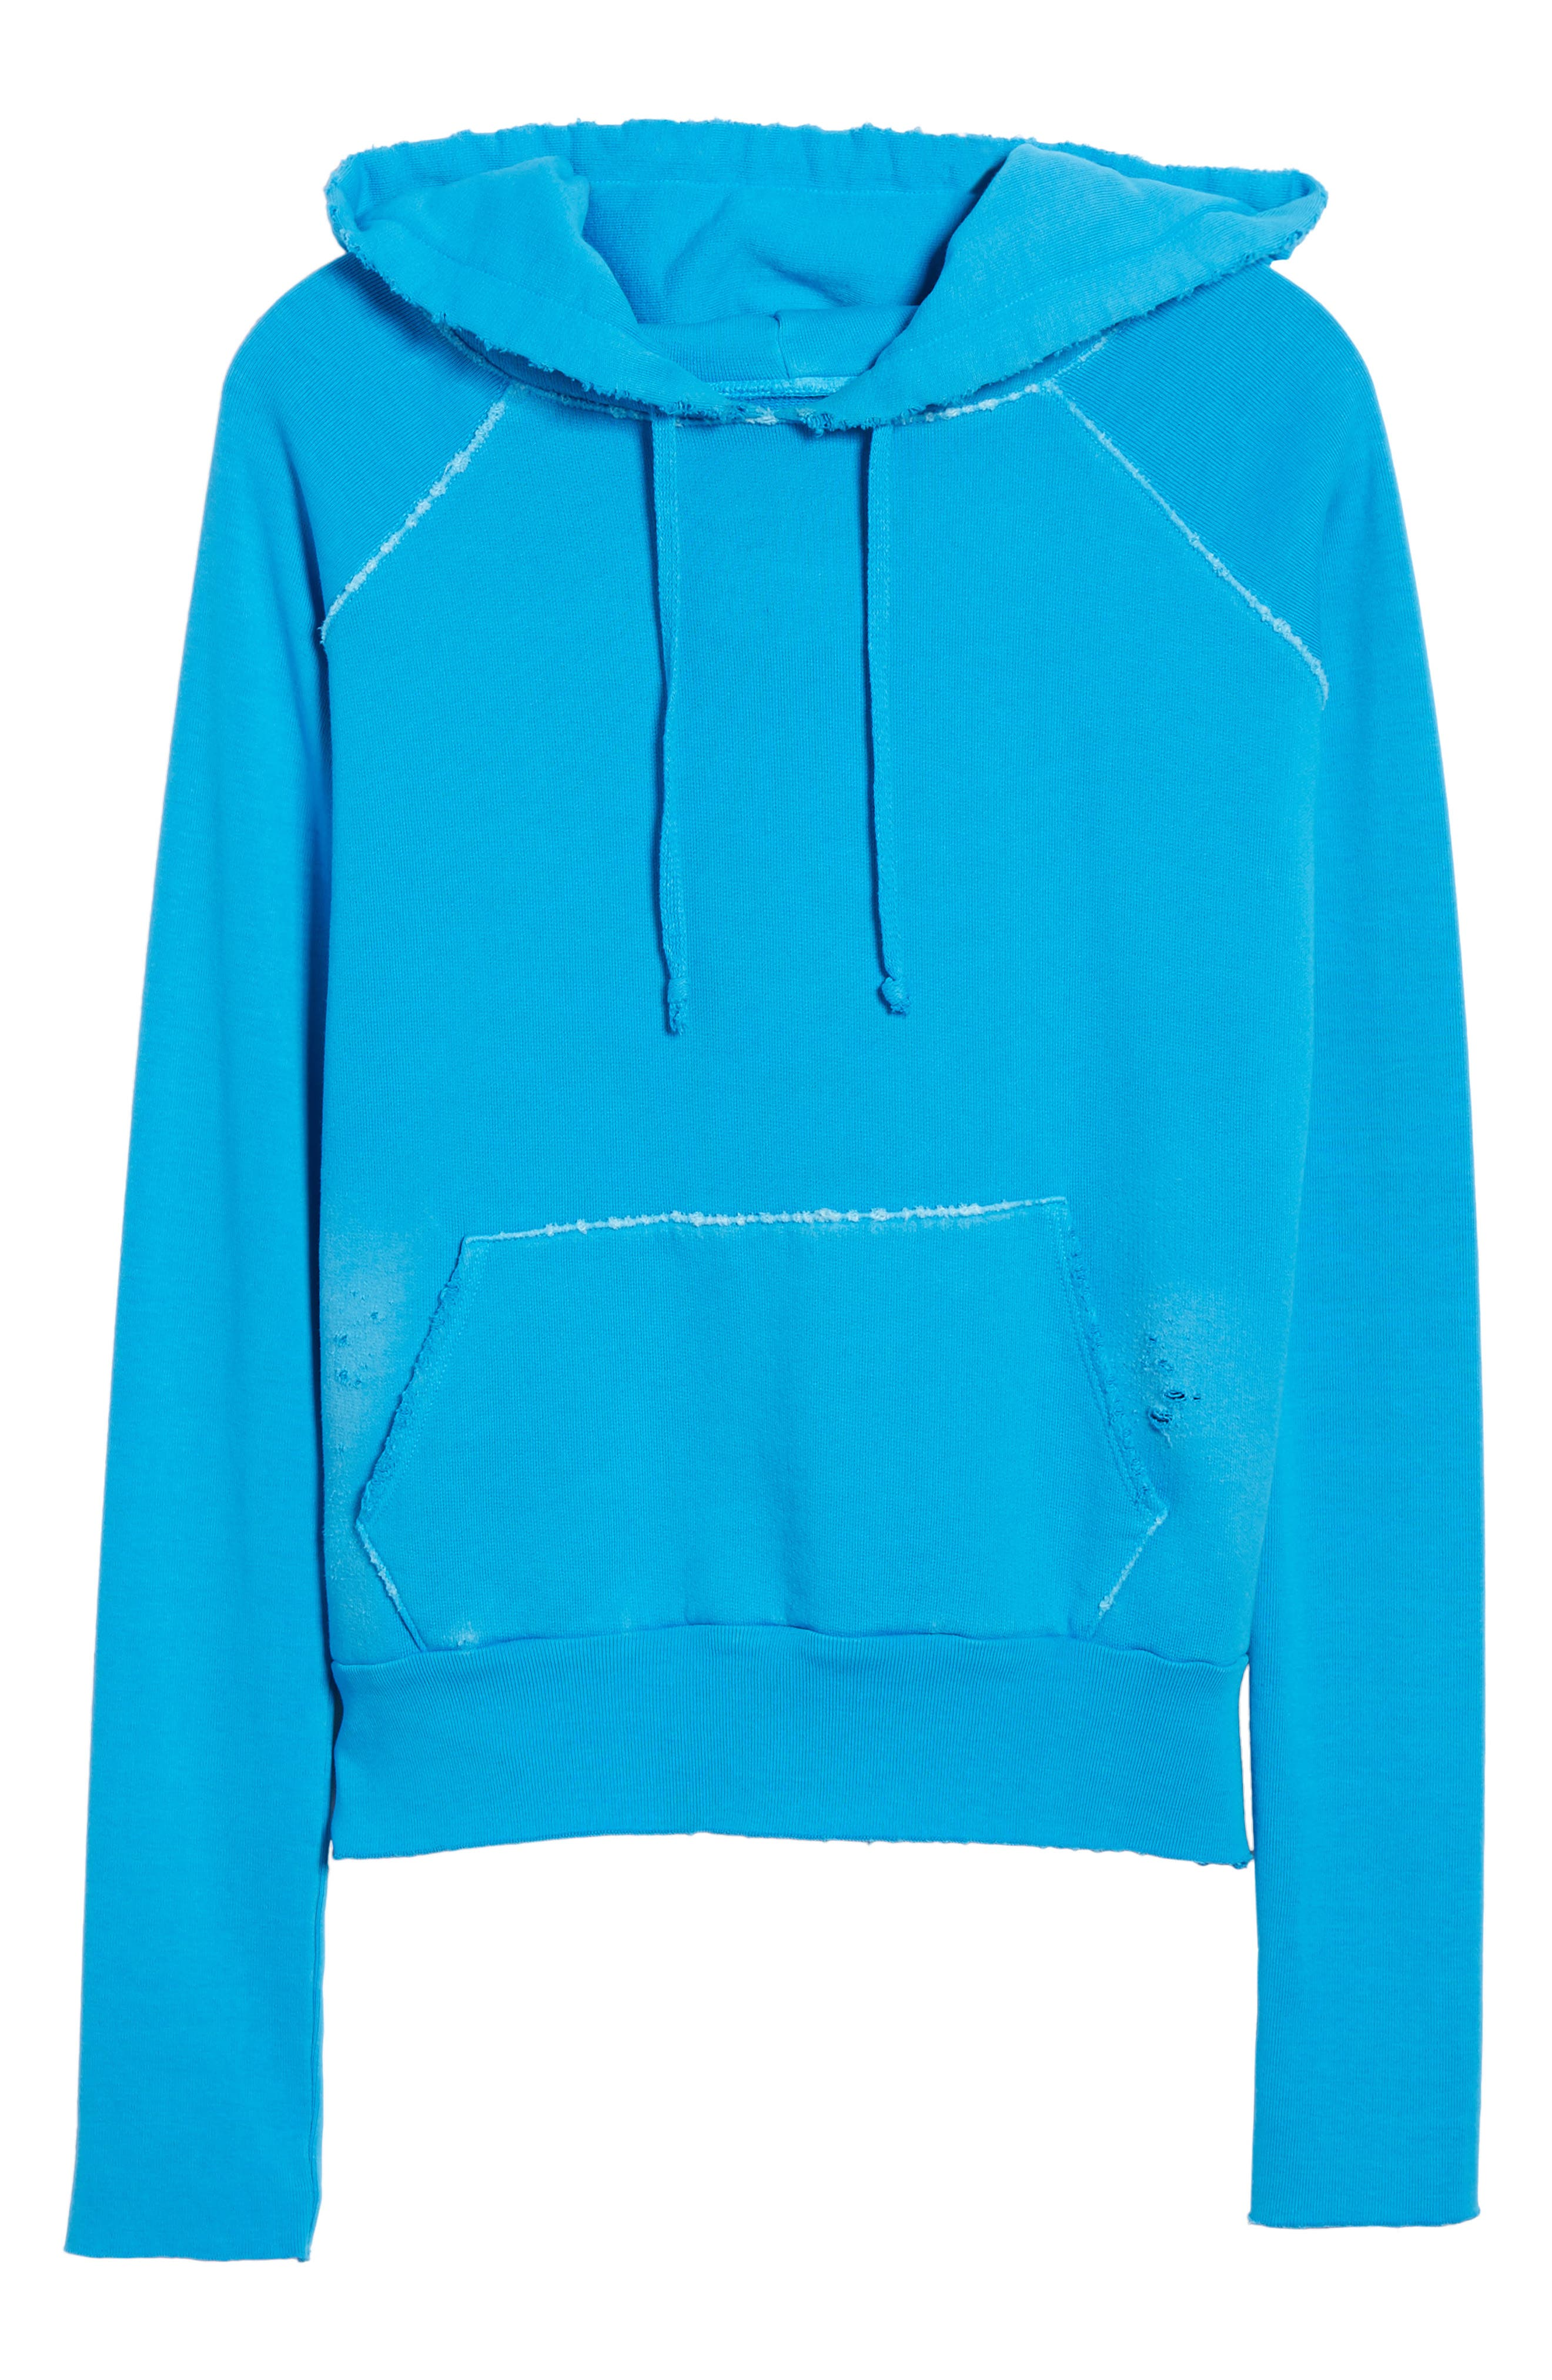 Tee Lab Pullover Hoodie,                             Alternate thumbnail 7, color,                             Highlighter 5 Year Vntge Wsh